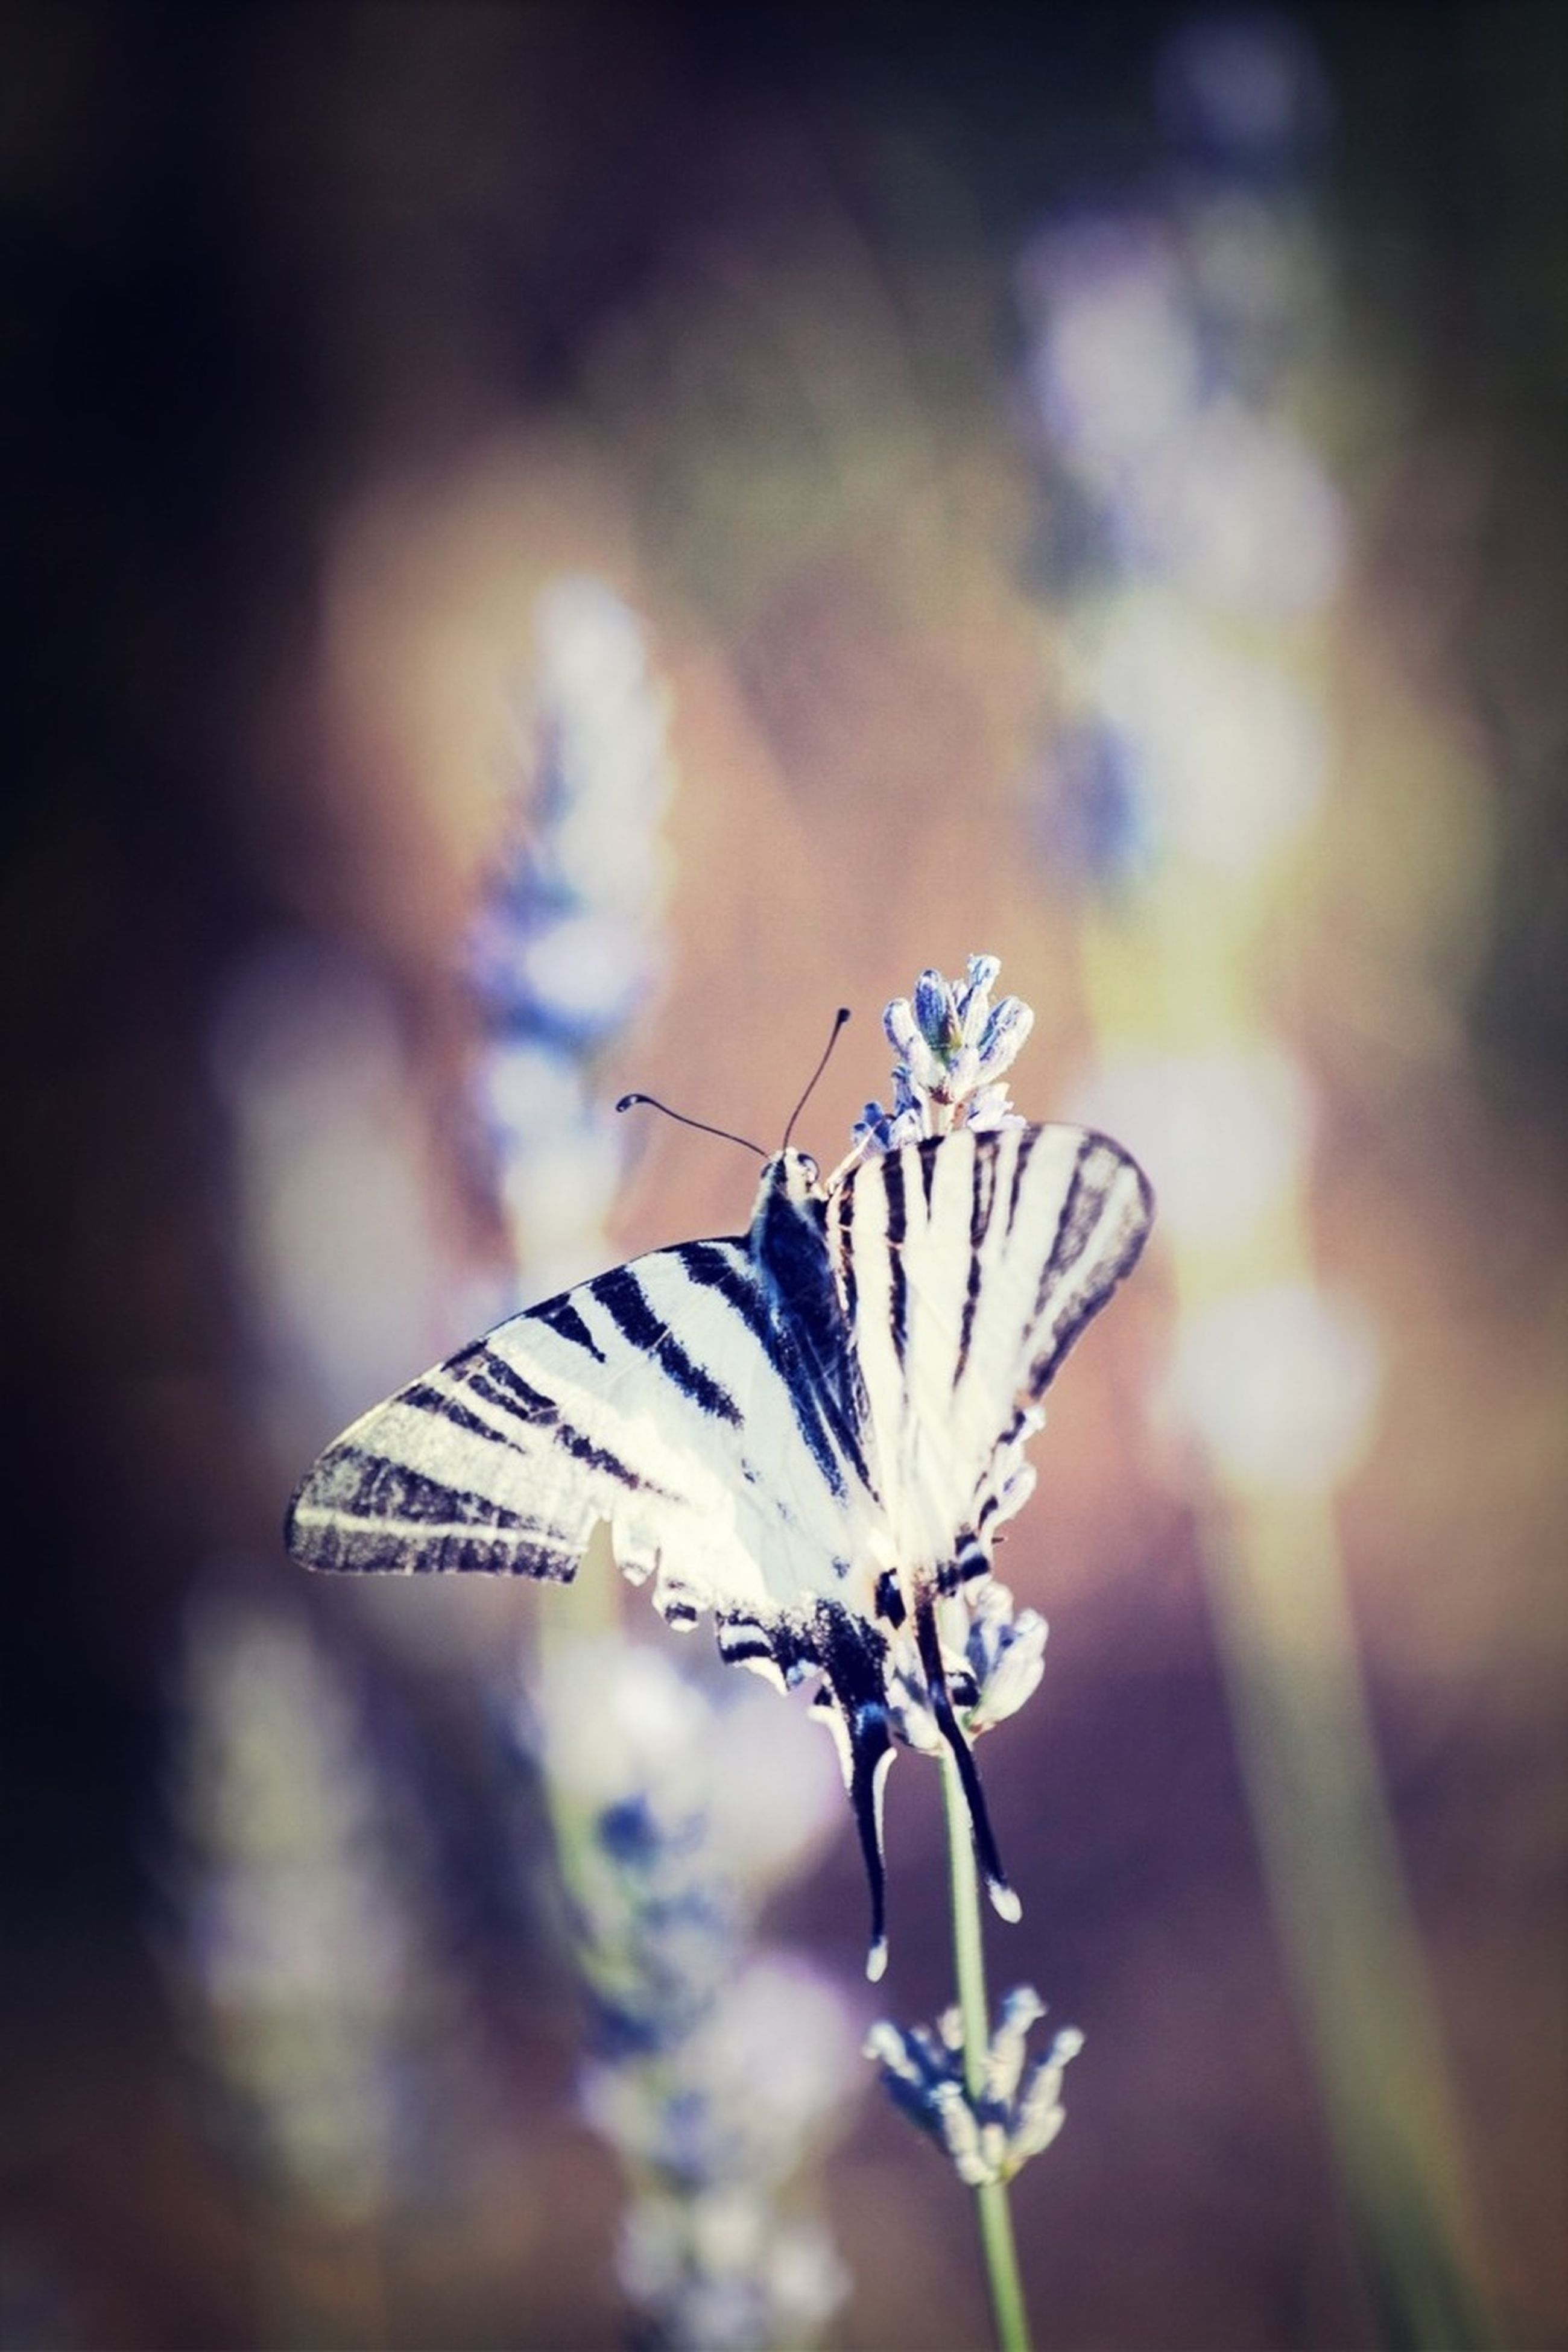 insect, one animal, animals in the wild, flower, focus on foreground, animal themes, butterfly - insect, butterfly, wildlife, fragility, close-up, beauty in nature, animal wing, nature, plant, outdoors, day, white color, no people, flying